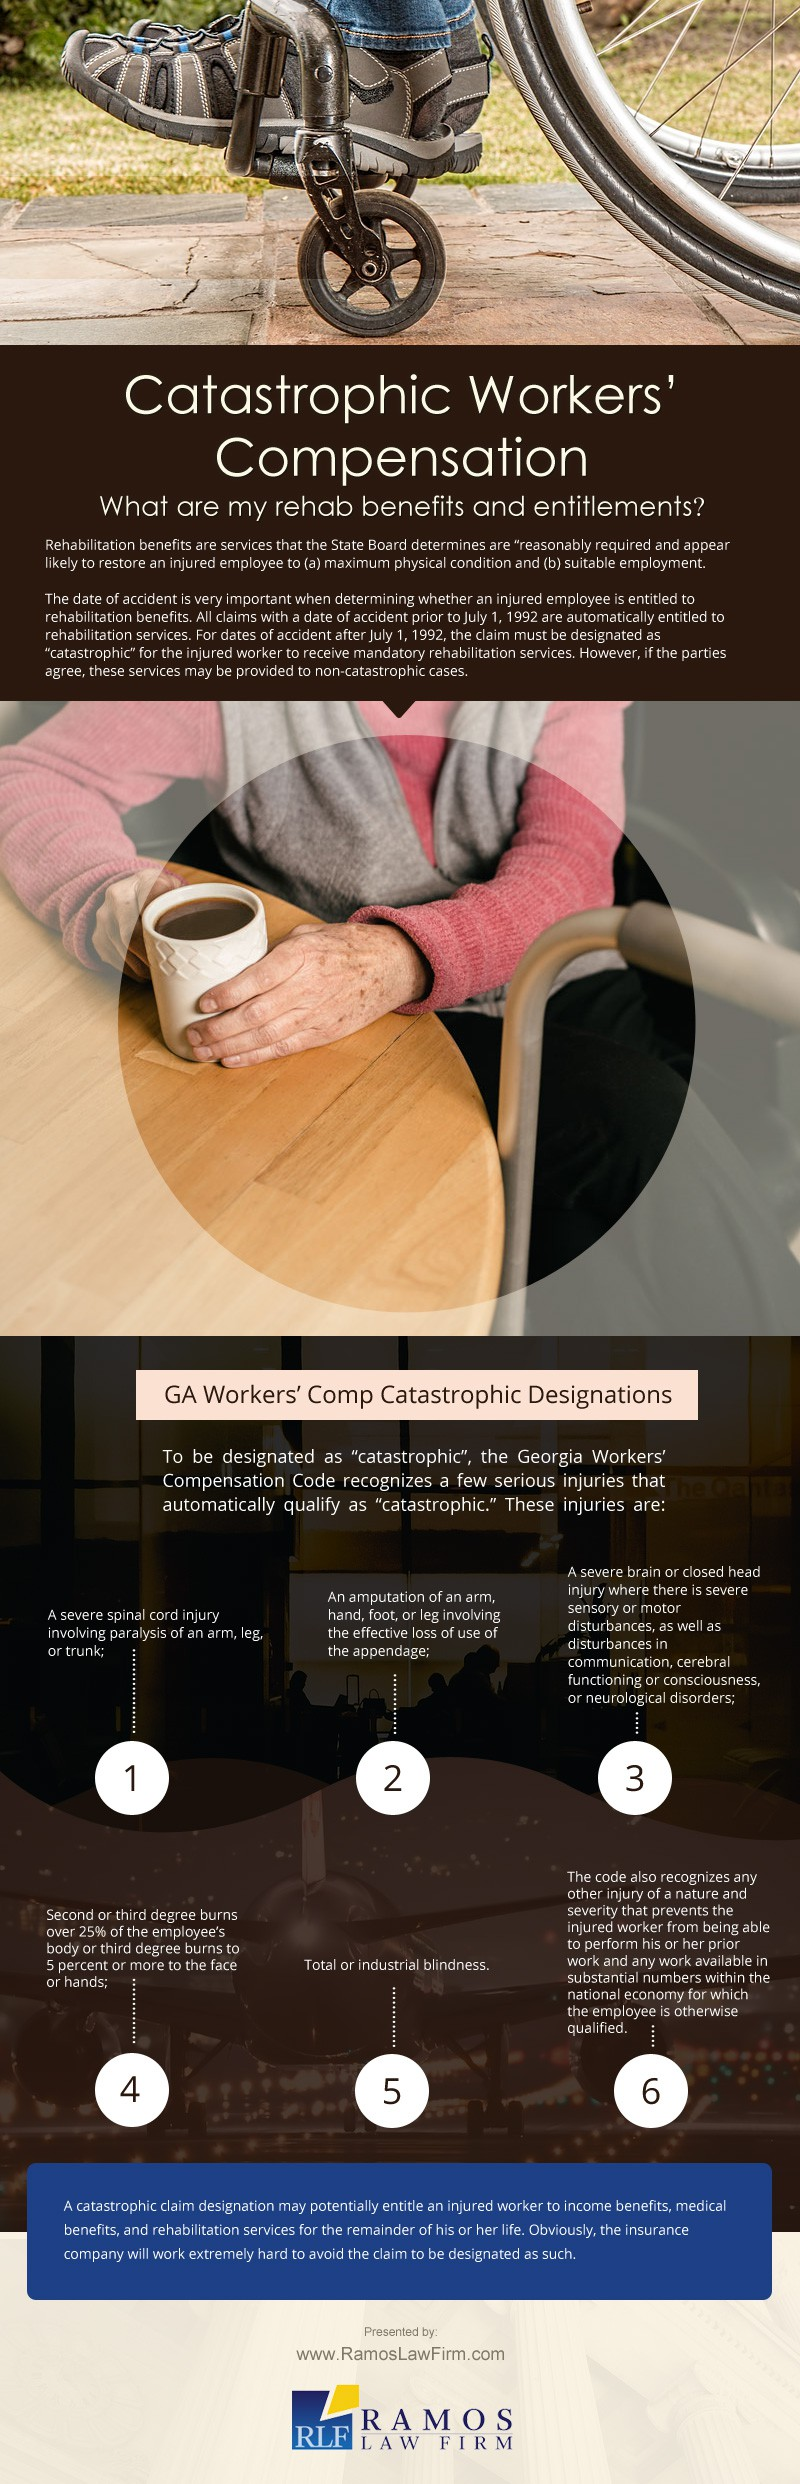 Catastrophic-Workers-Compensation Infographic